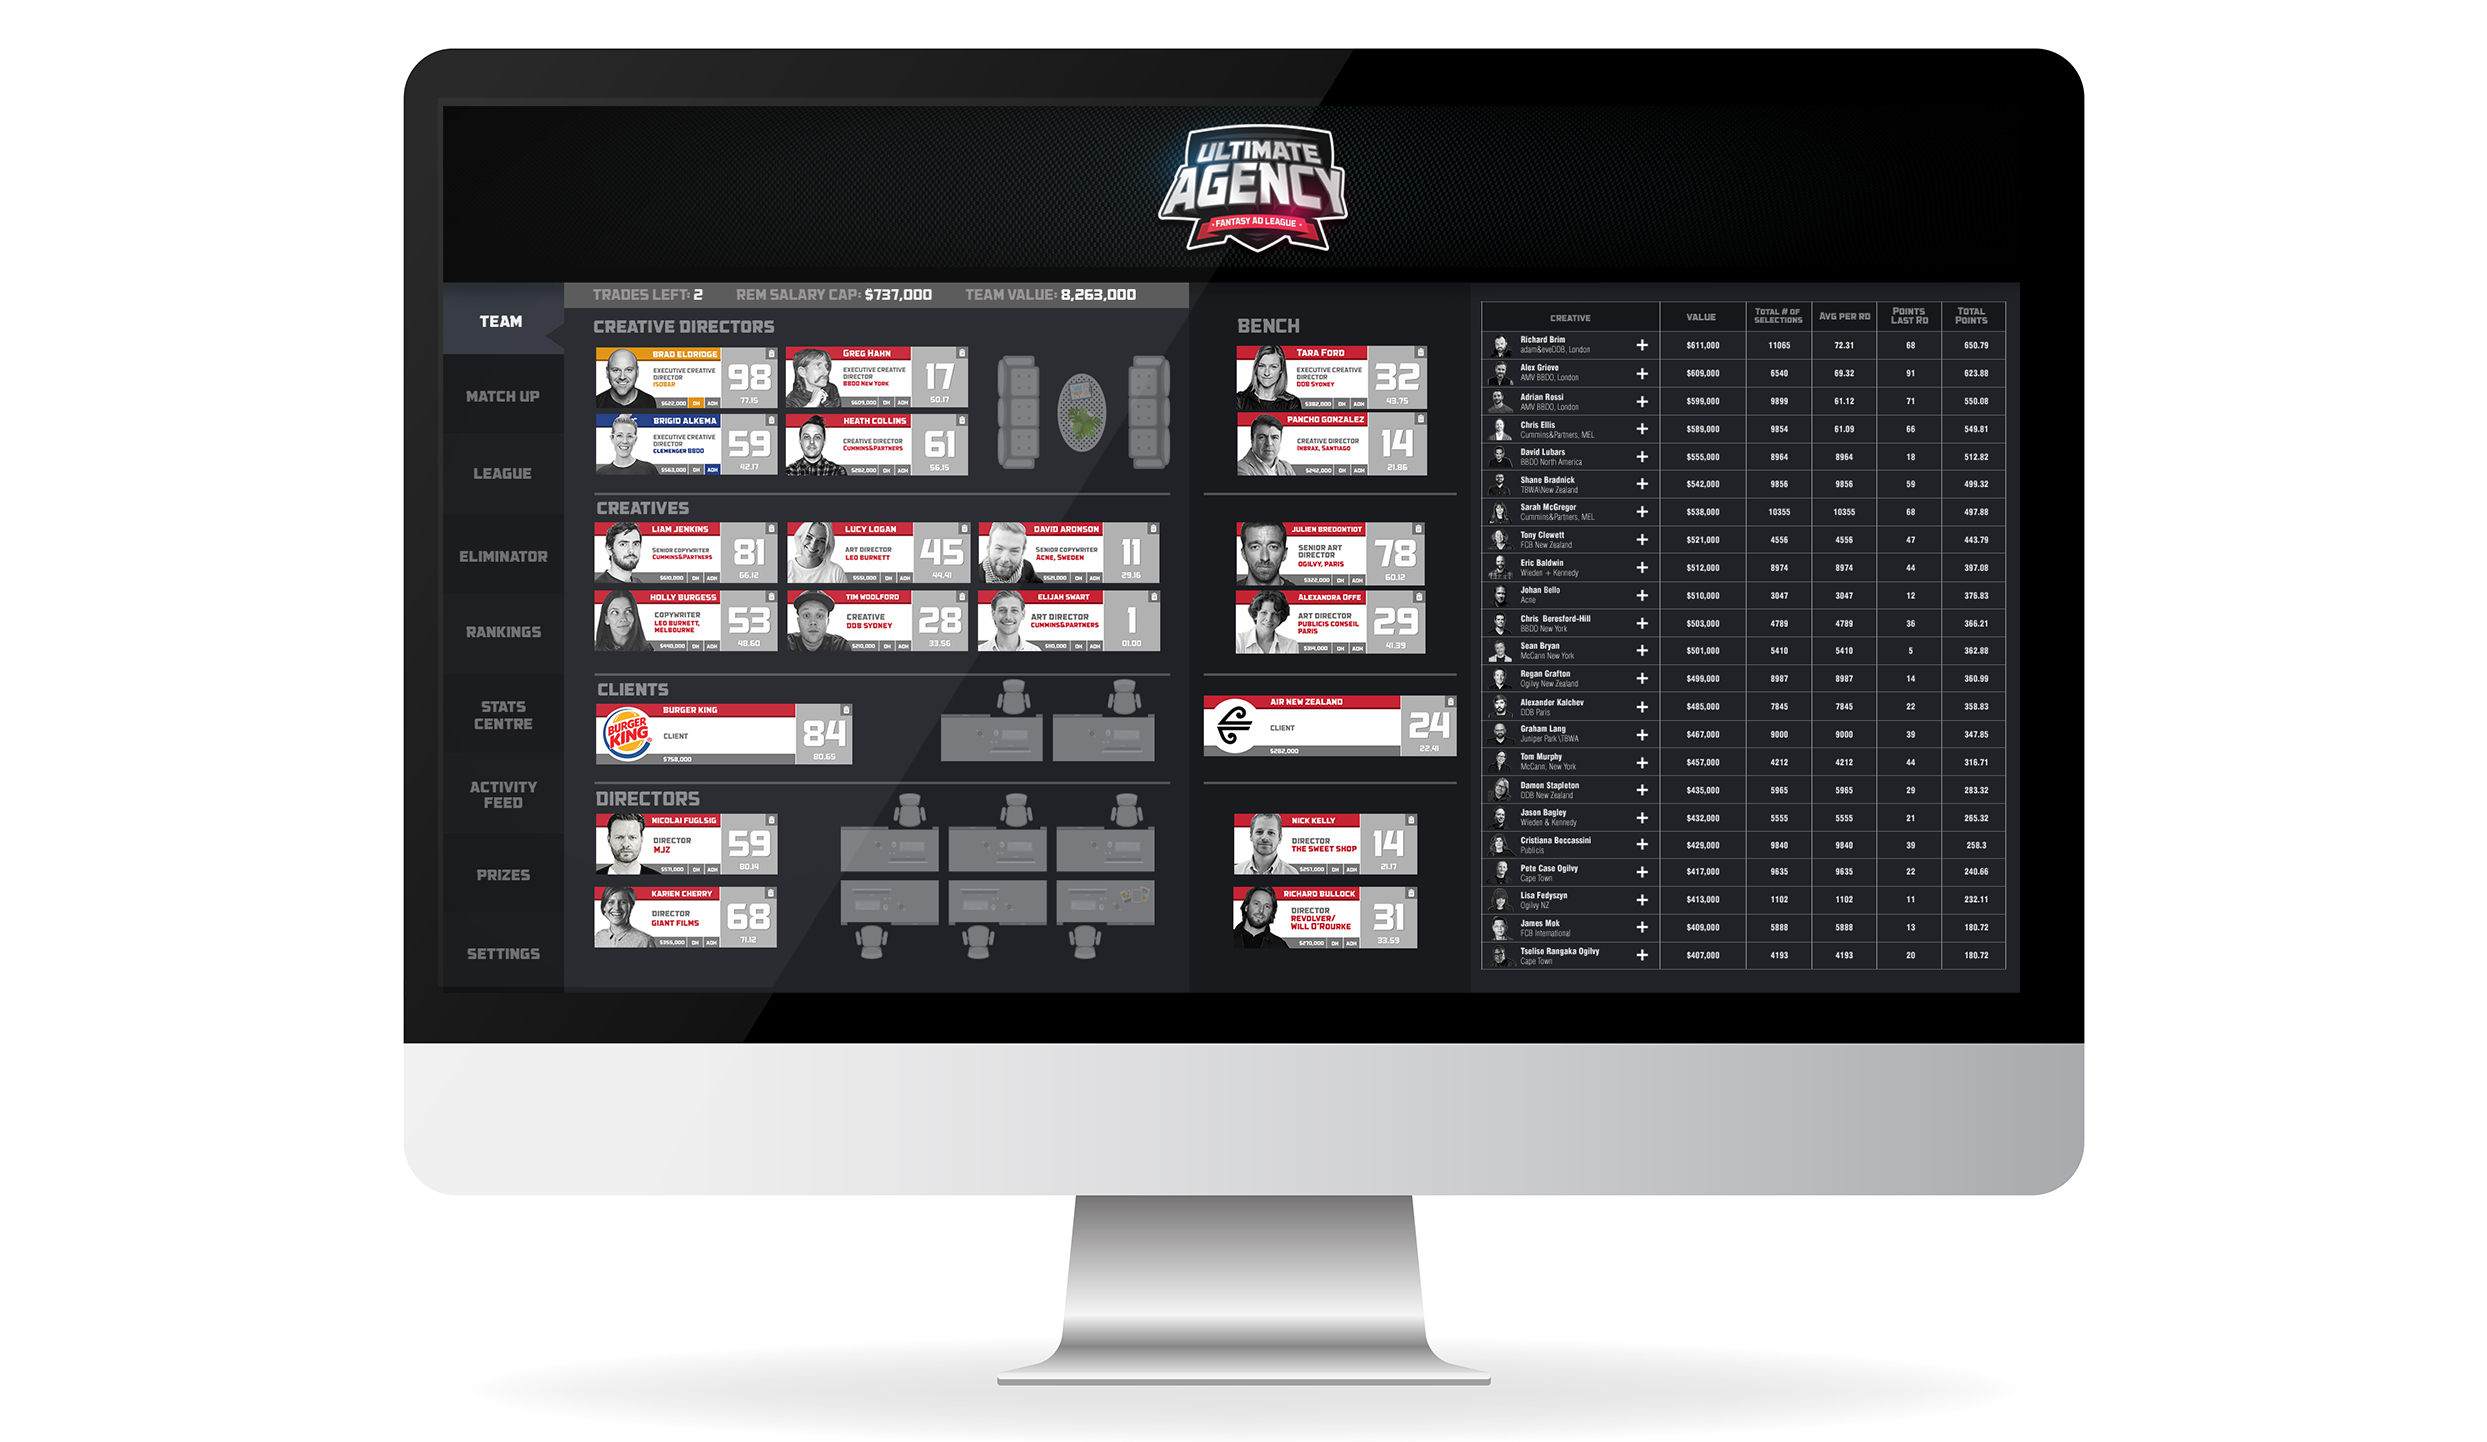 Bestads turns the advertising game into an actual game with launch of Ultimate Agency ~ UPDATE: CB thanks Cummins&Partners, MELBOURNE for this clever April Fool's story